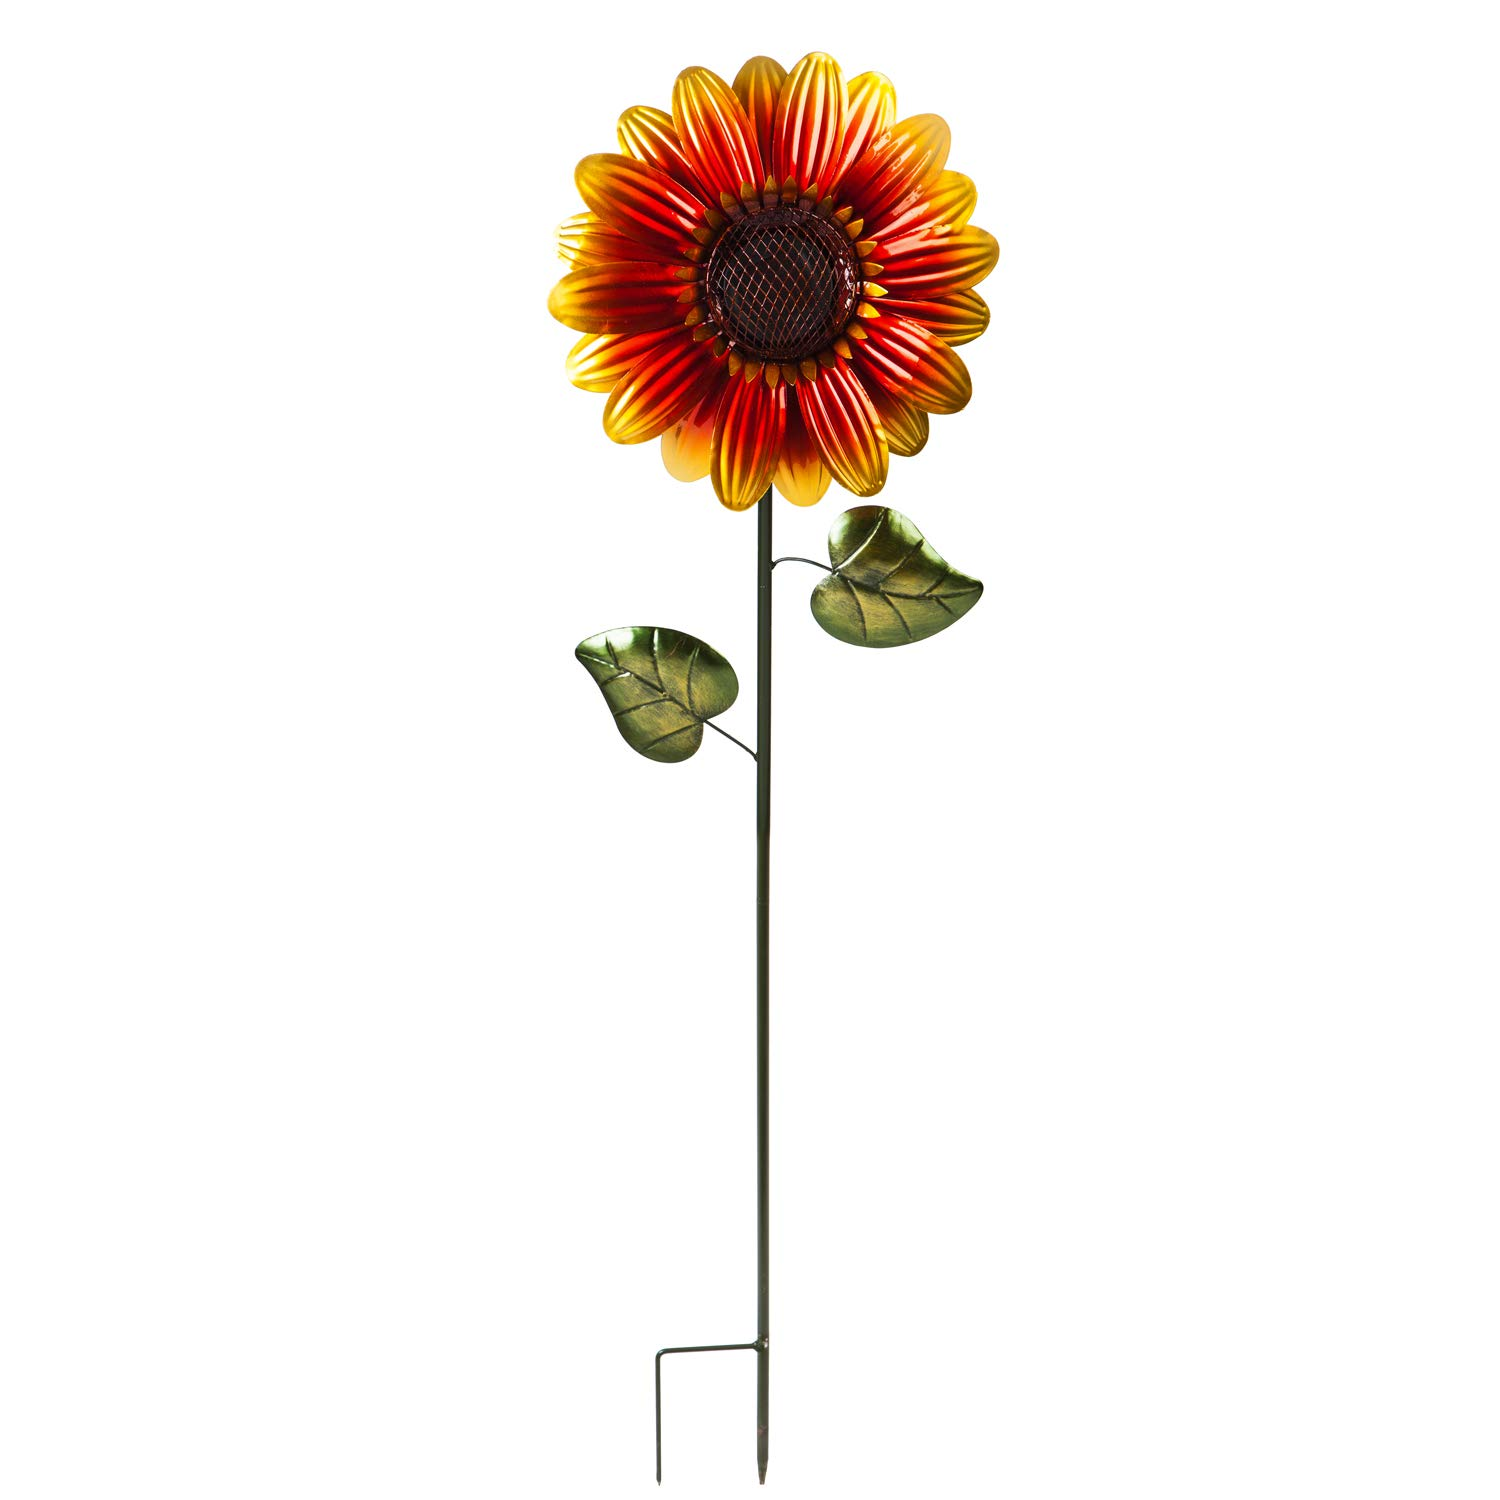 "Evergreen Garden Sunflower 38"" H Secret Solar Garden Stake 11.6 x 5.9 x 38 Inches"